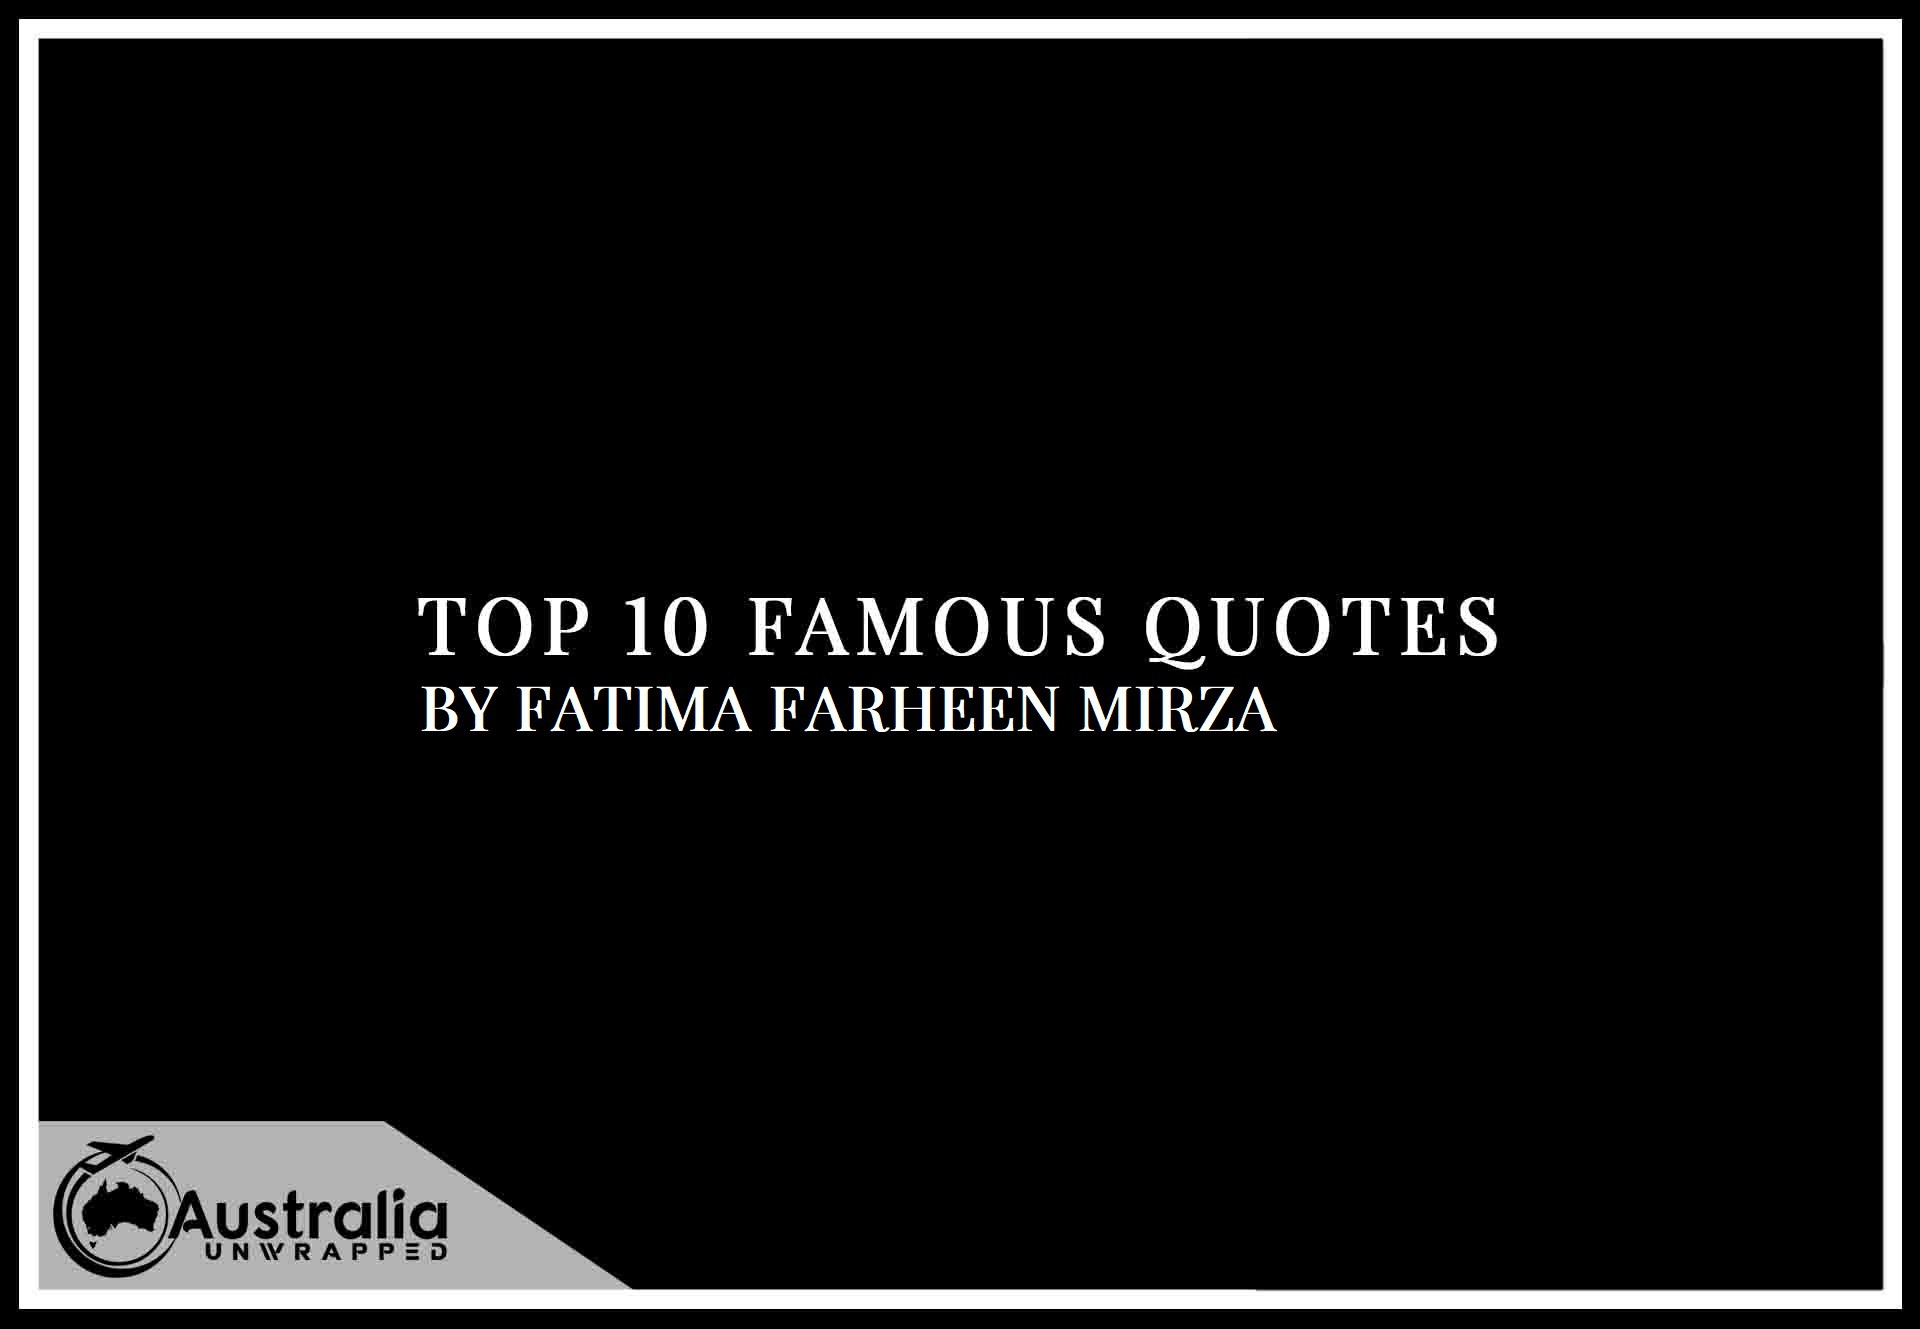 Top 10 Famous Quotes by Author Fatima Farheen Mirza